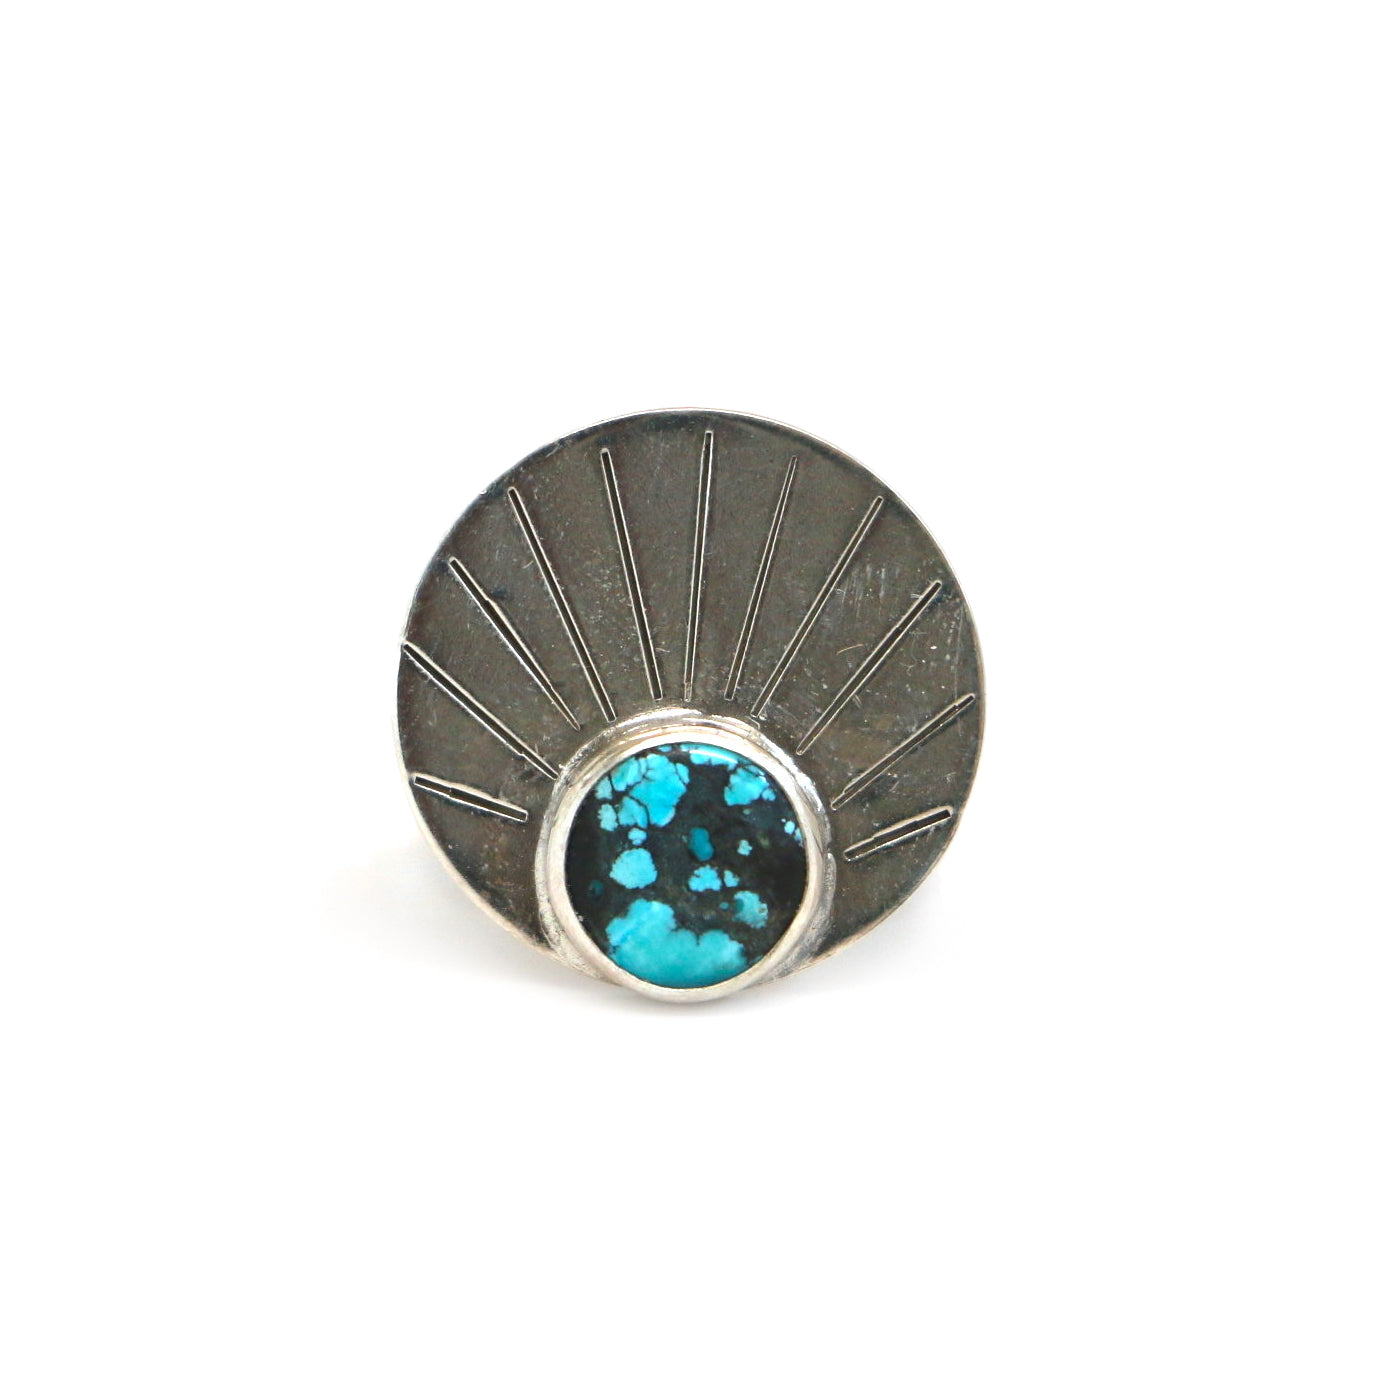 Turquoise Rising Ring #2 - Size 7.5